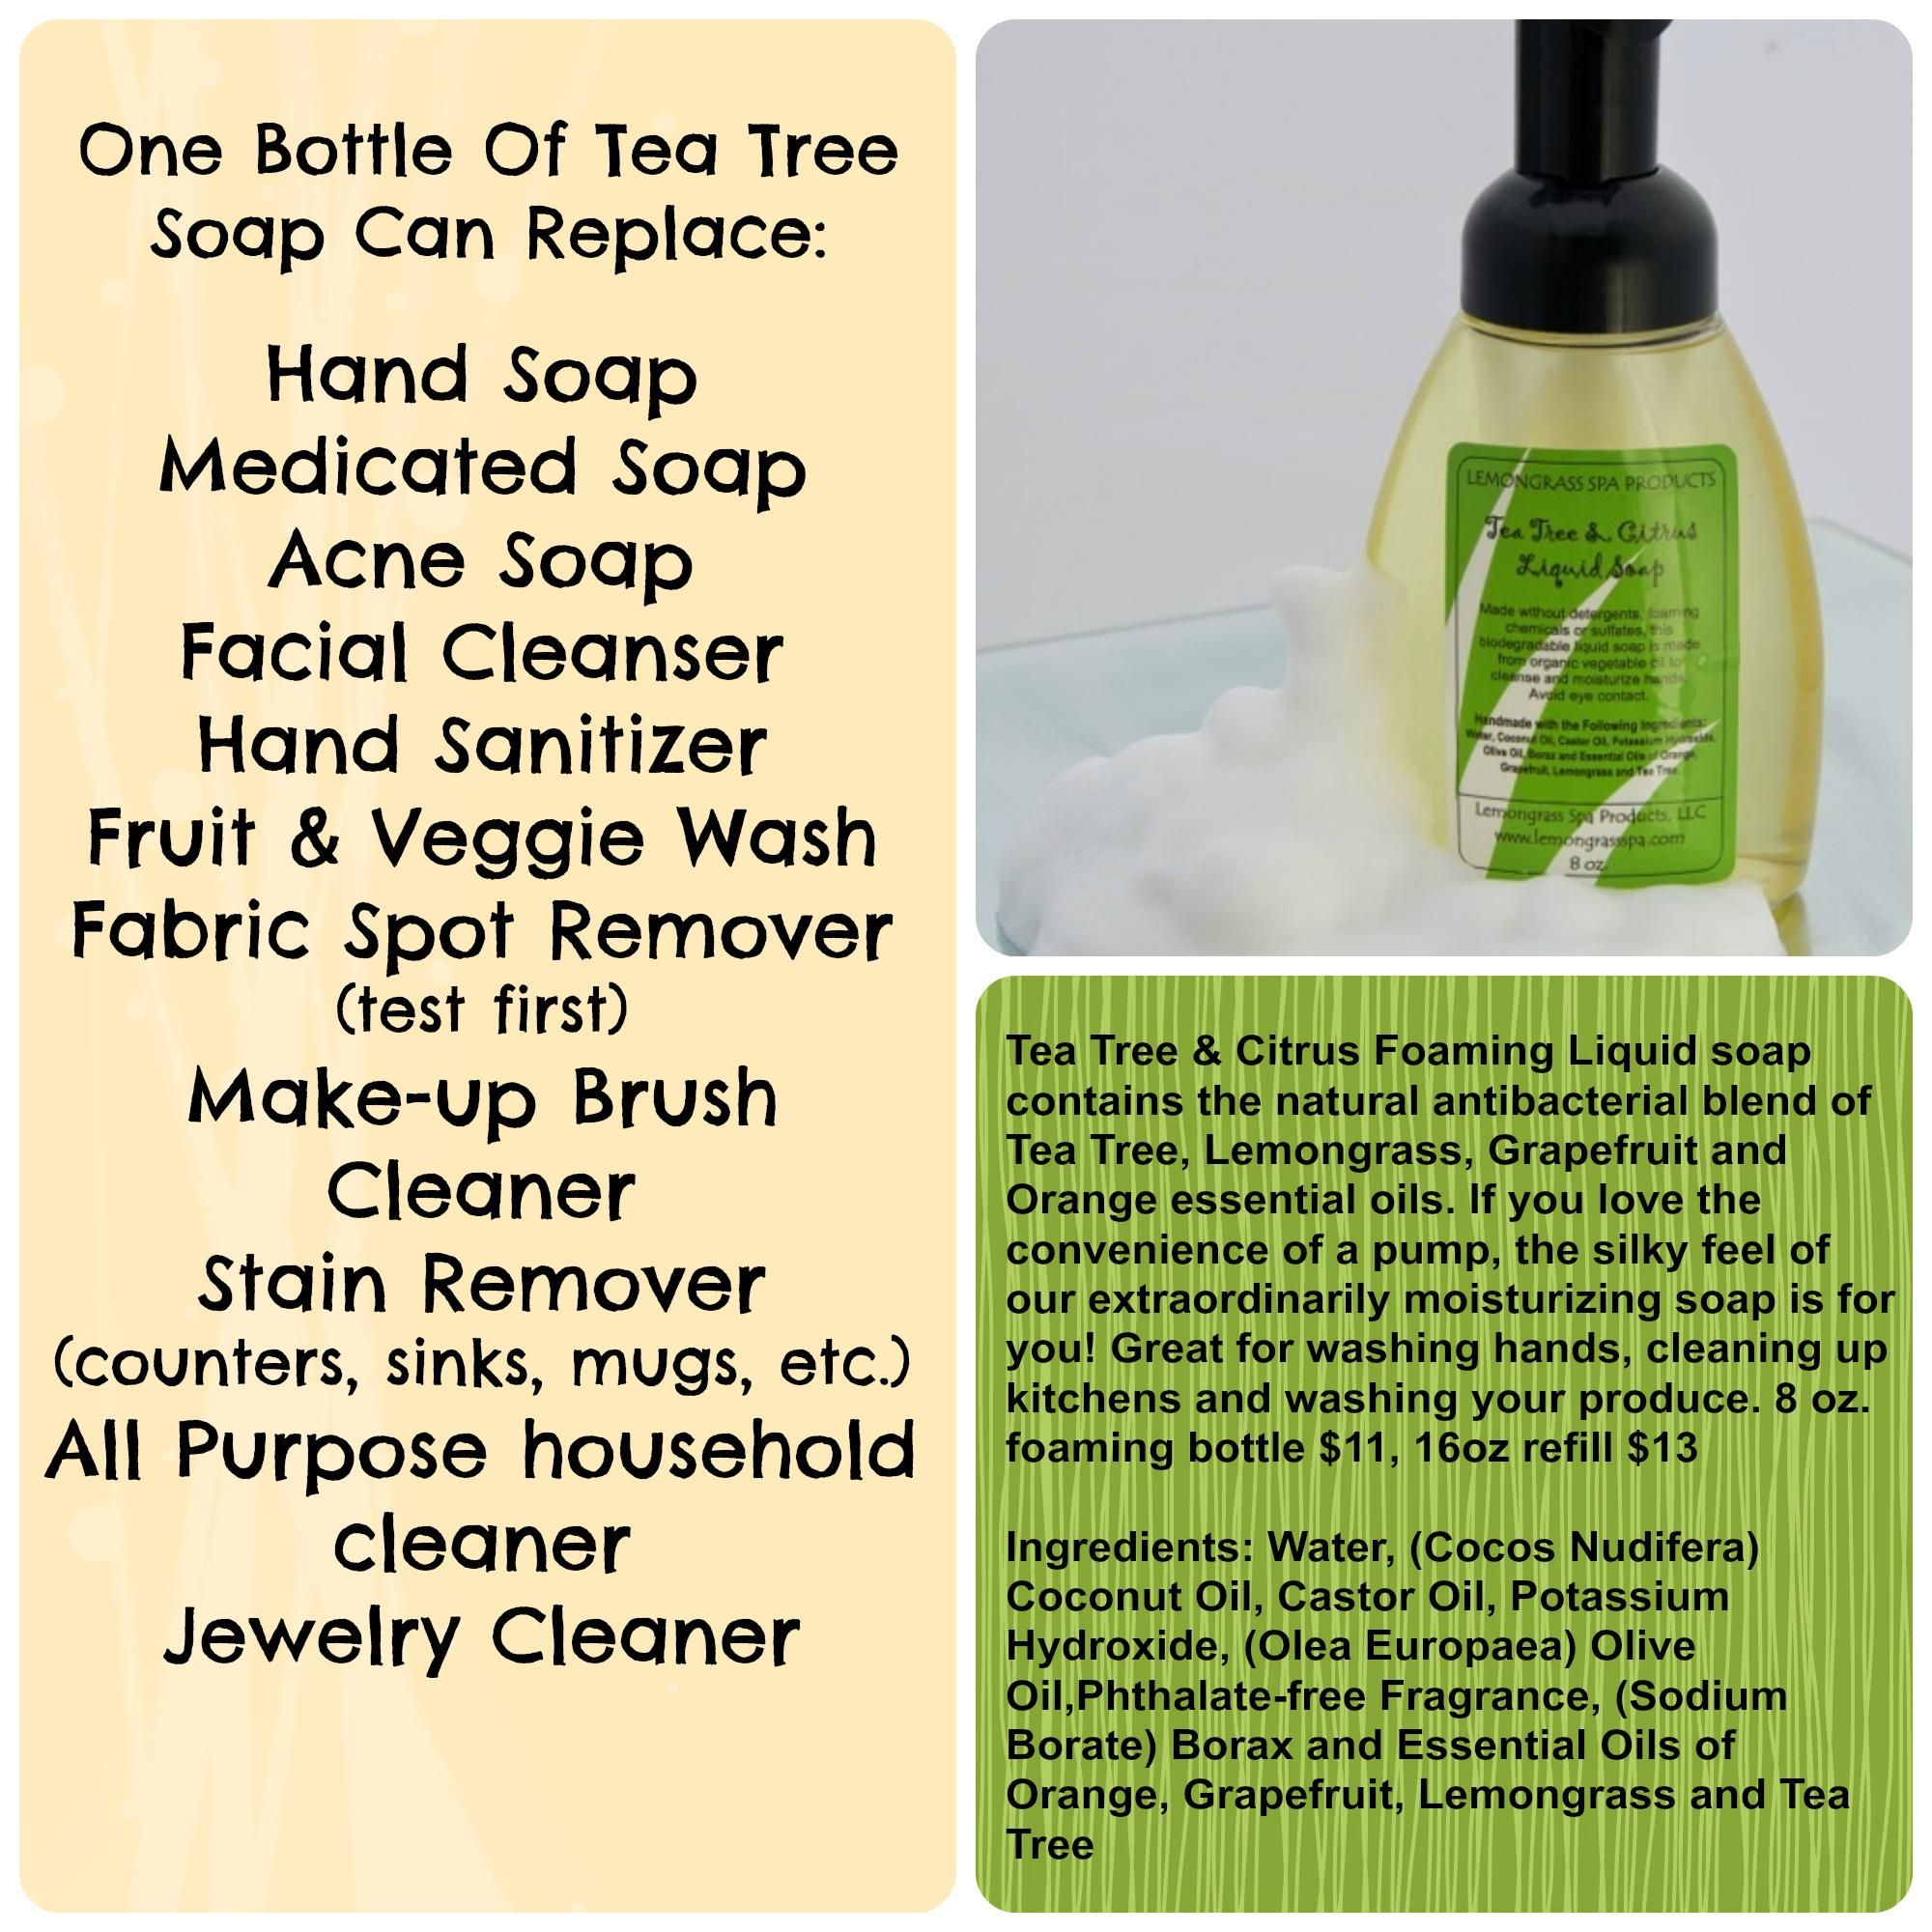 Tea Tree Liquid Soap Replaces Many Products In Your Home Does Not